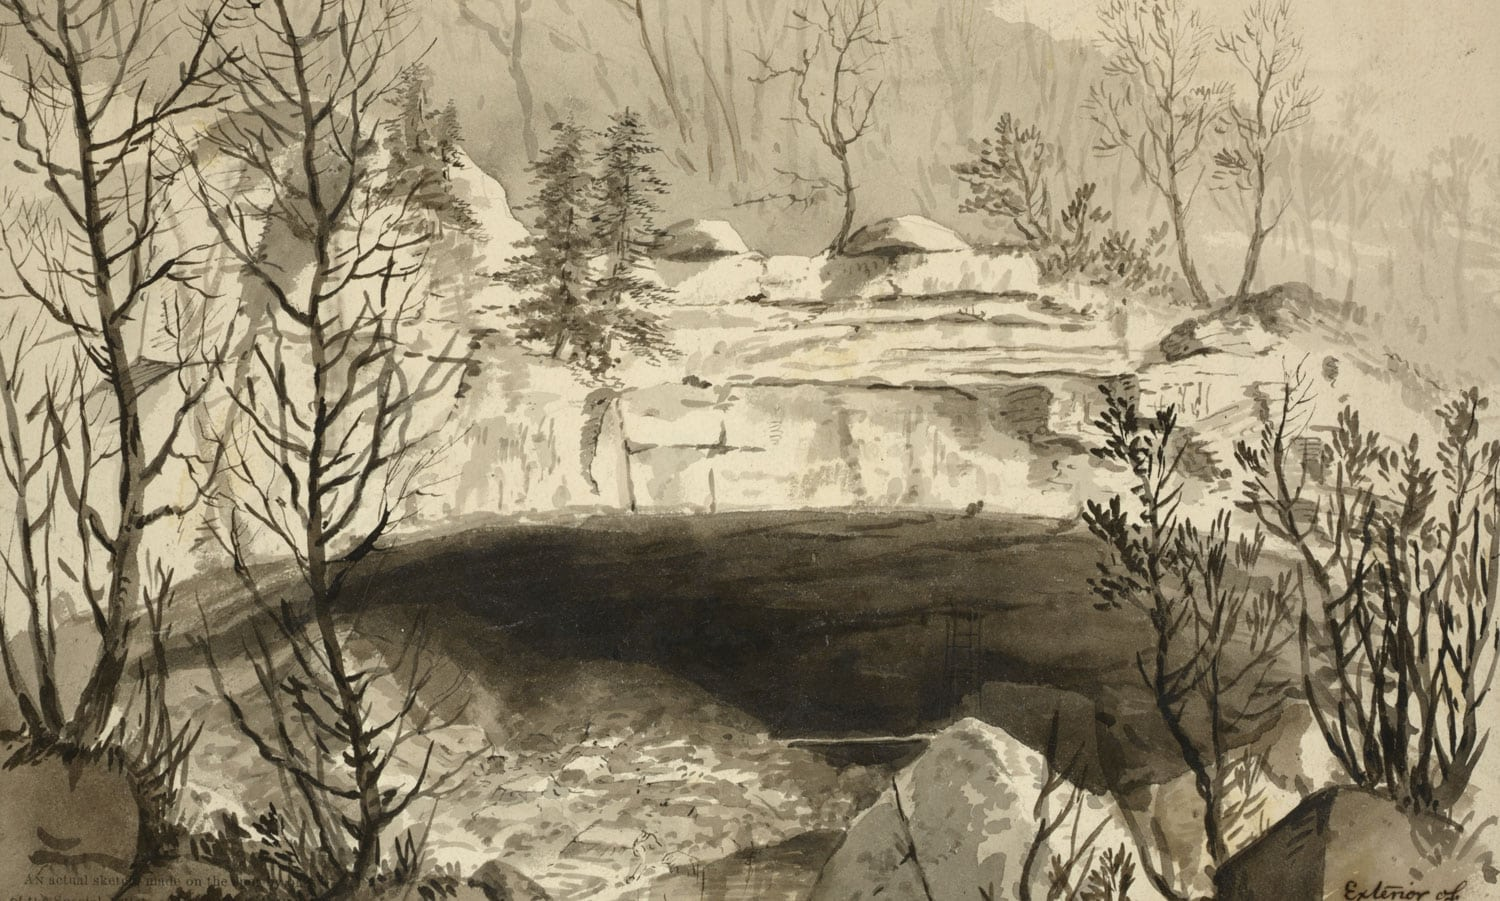 Much Tennessee History Happened At Nickajack Cave The